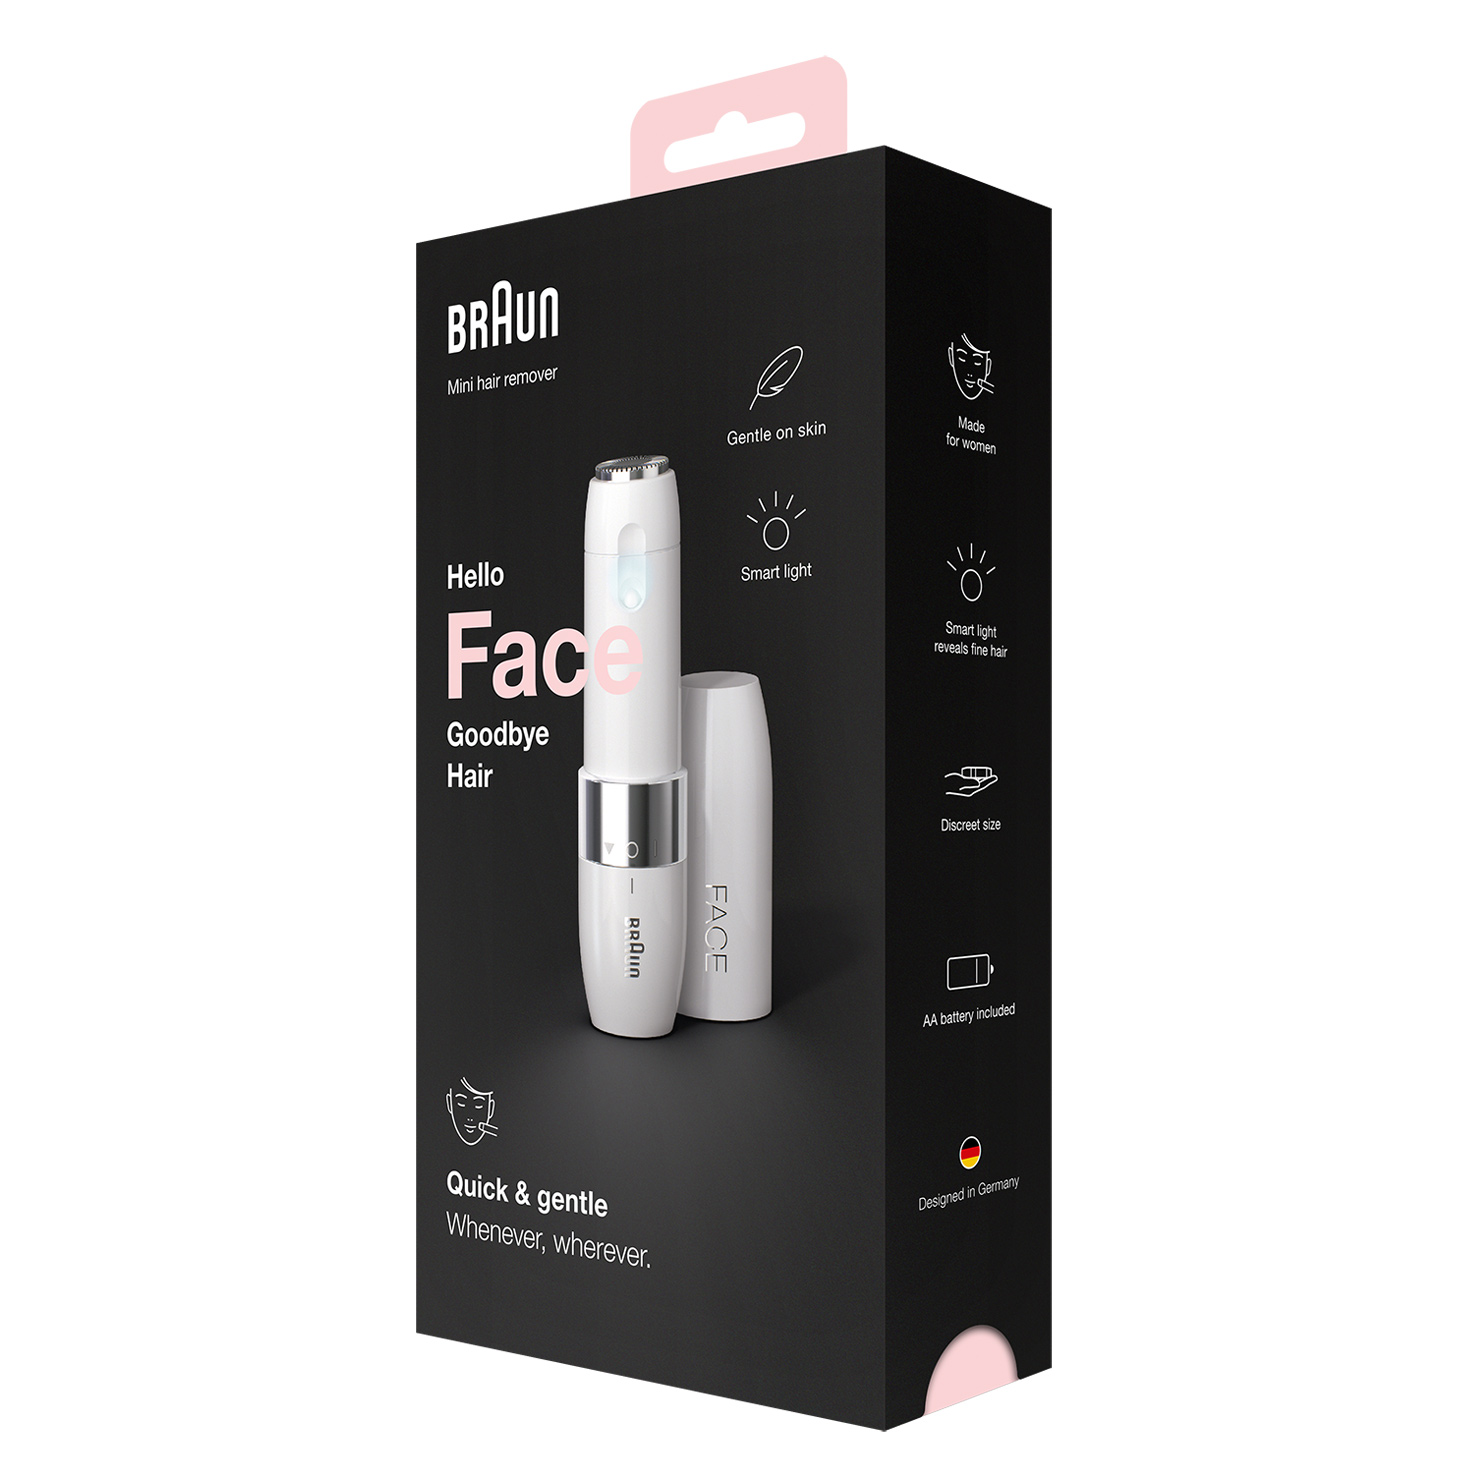 Face Mini hair remover FS1000